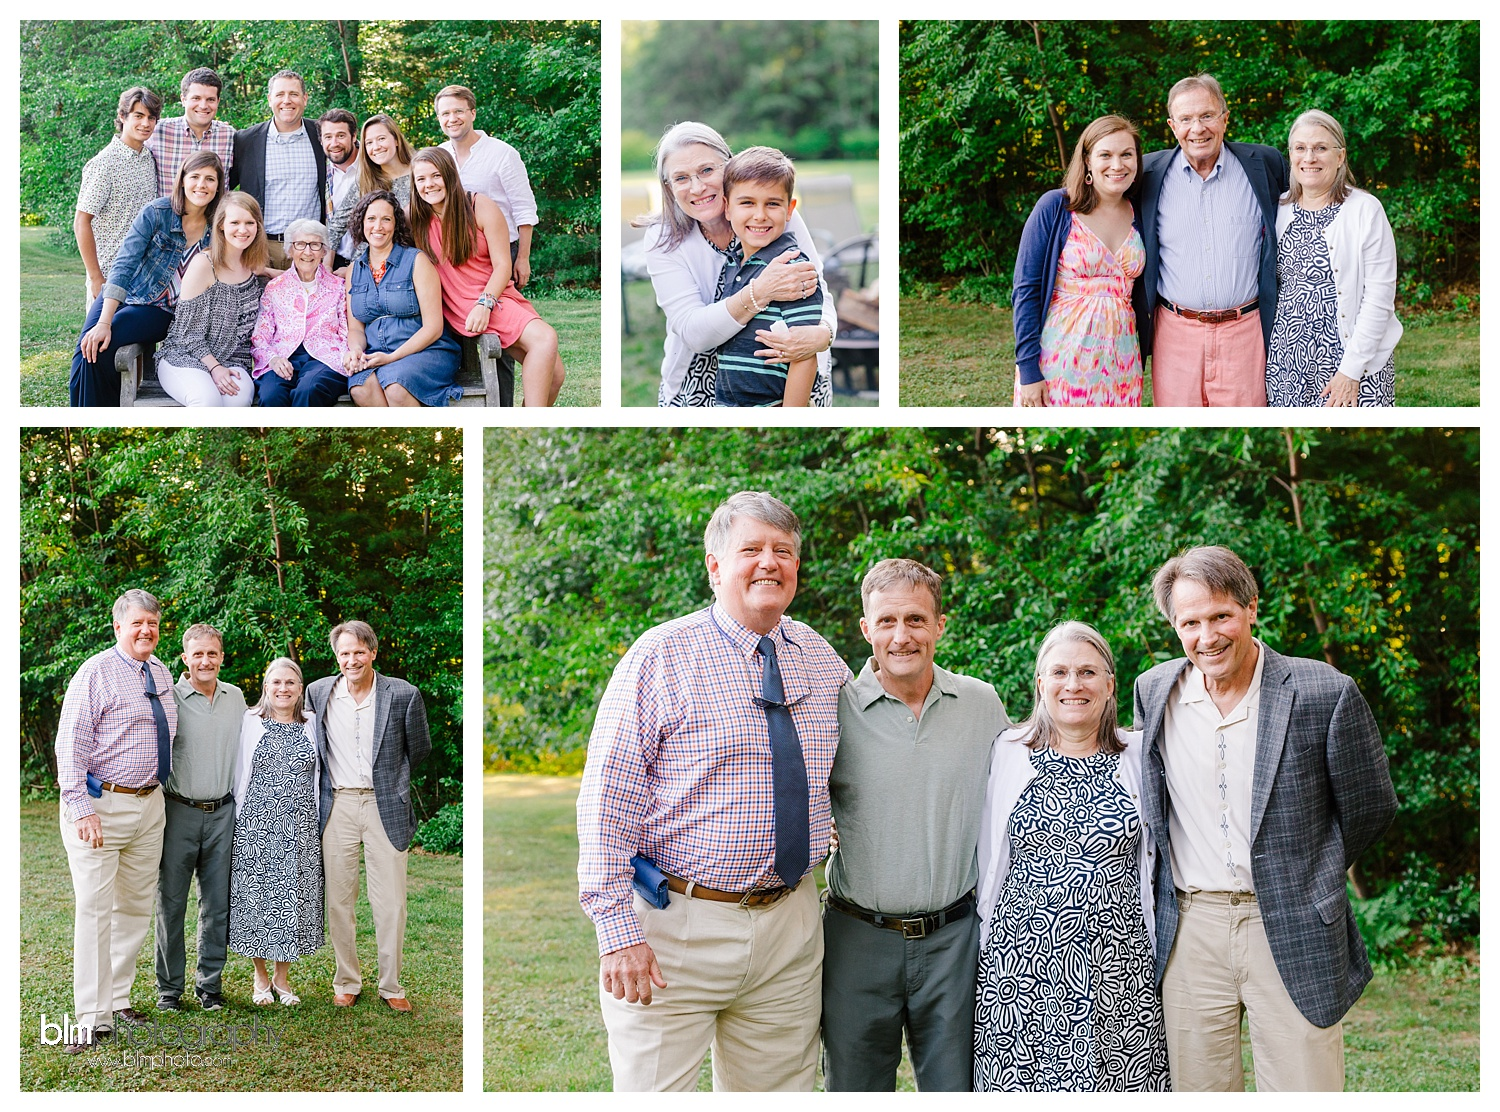 2017,20170729,23,91,Artistic,BLM,Candid,Creative,Dublin,Family Photography,Family party,Family photos,Home,Learned,Learned Rd,Learned Road,Martha Duffy,NH,NH Family Photographer,NH Wedding,Natural,Natural Light,Niles,Niles Family,Outdoor,Personal,Pet,Peterborough Wedding Photographer,Photo,Photographer,Photography,Photojournalistic,Portrait,Professional,Professional Wedding Photography,Rd,Road,USA,United States,Vivid,Wedding Photography,family reunion,www.blmphoto.com,©BLM Photography 2017,